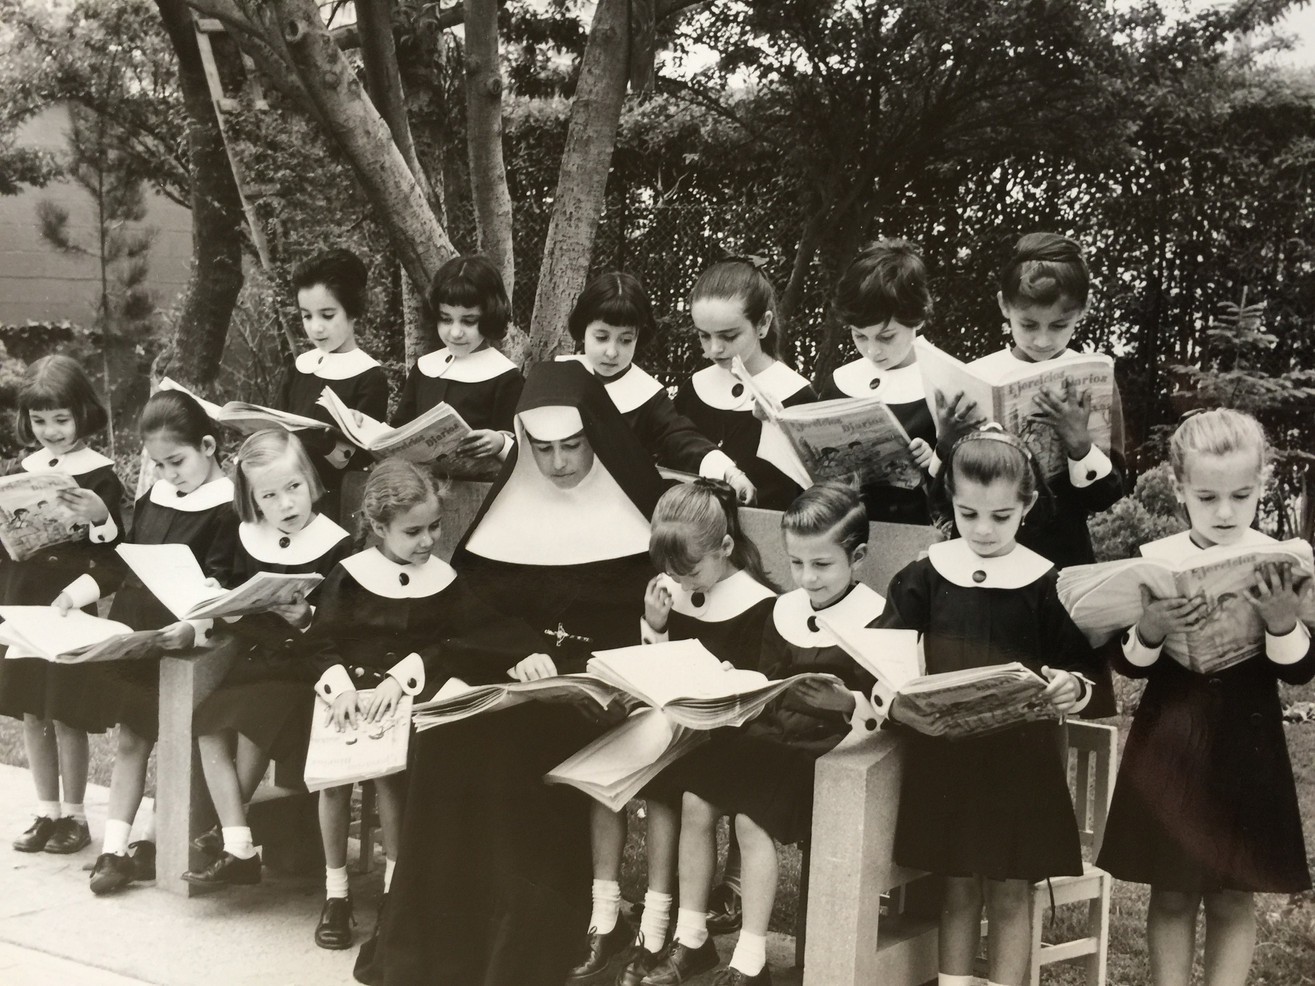 Because many parents wanted their daughters educated at the Instituto Miguel Ángel, Sr. María found a new site in Colonia Florida to accommodate the growing numbers of students. The new school opened in 1967.